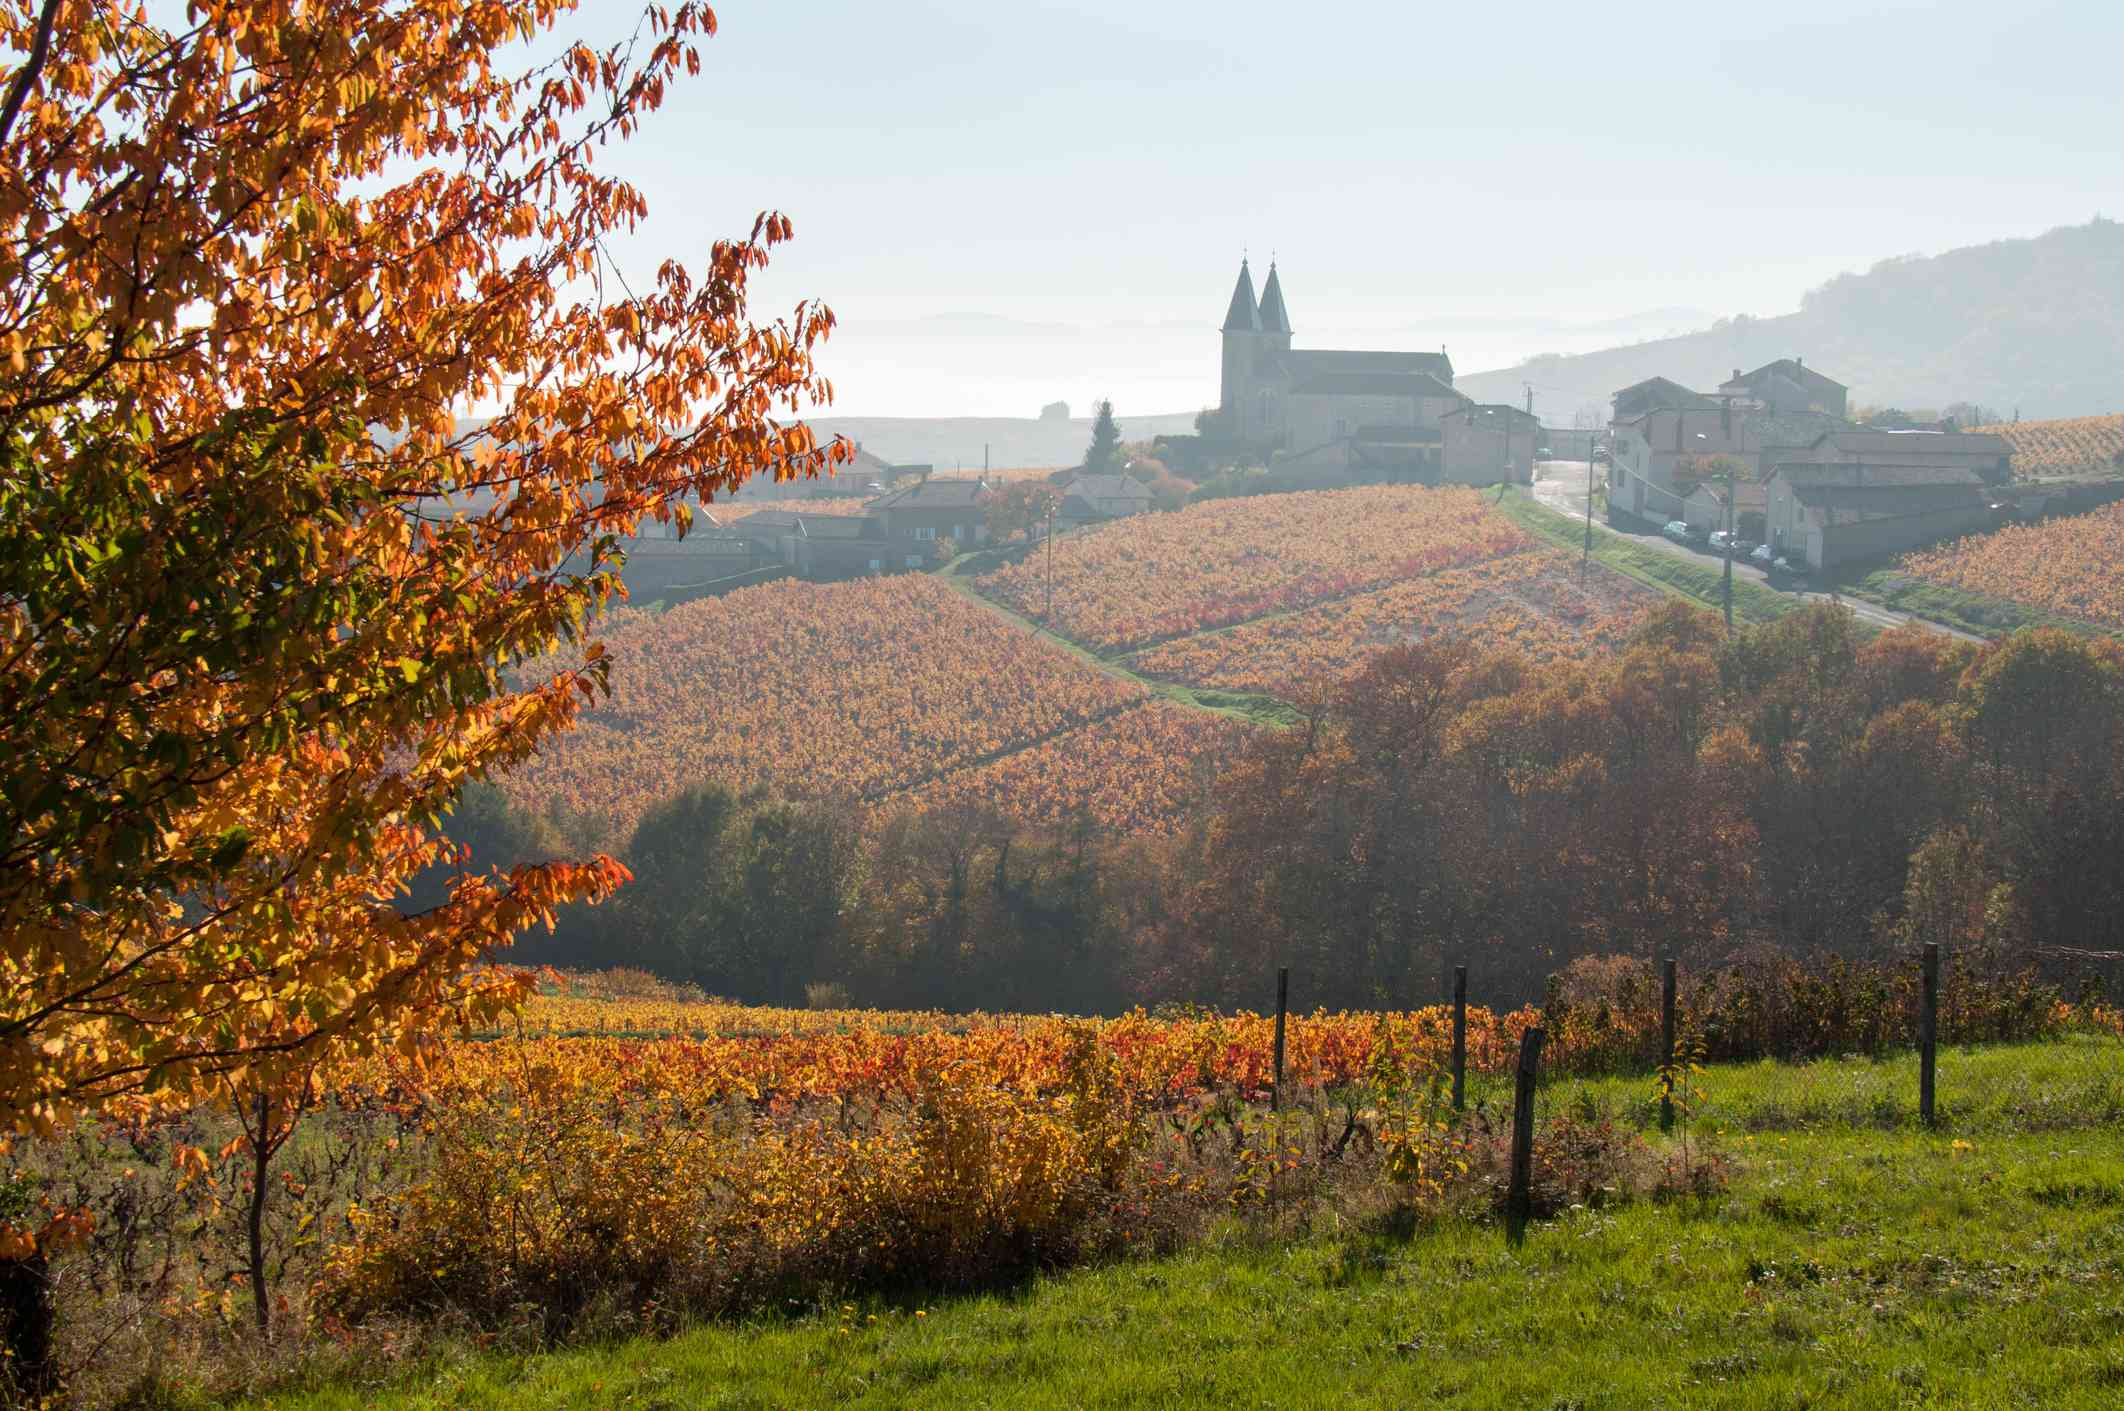 red Vineyards in the mist in Beaujolais region of France